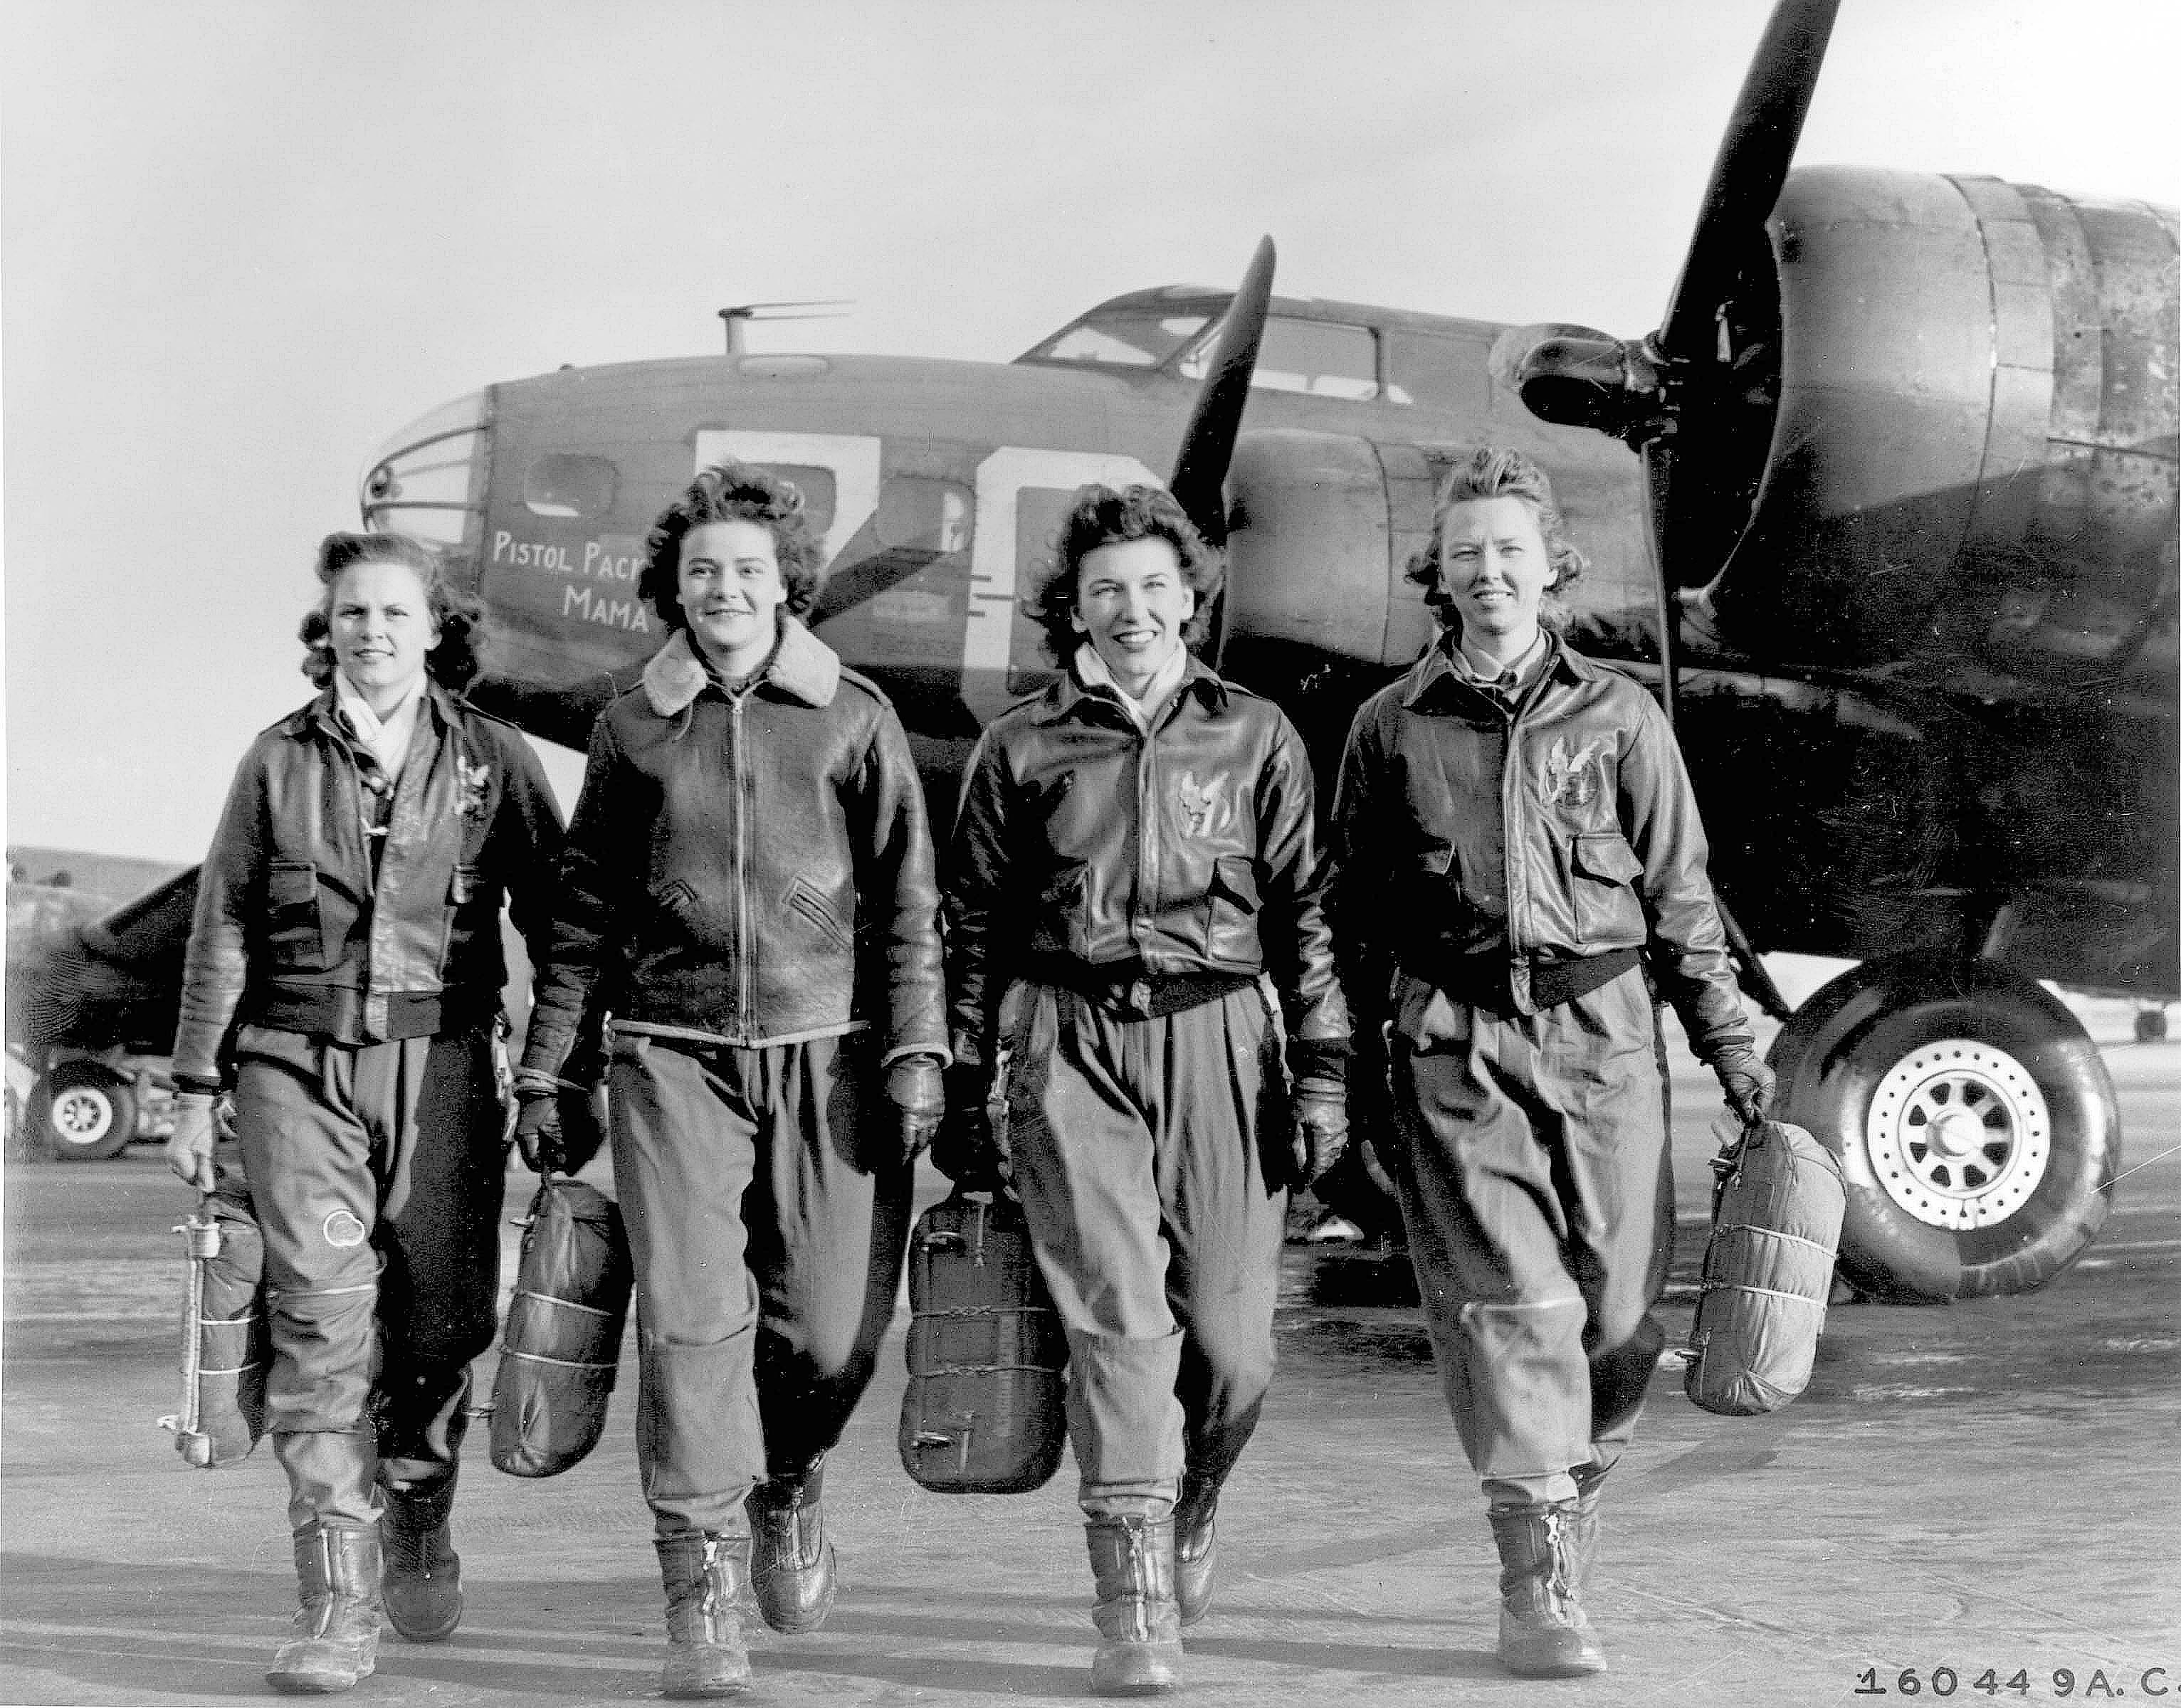 WASP Pilots Leaving Their B-17 Flying Fortress